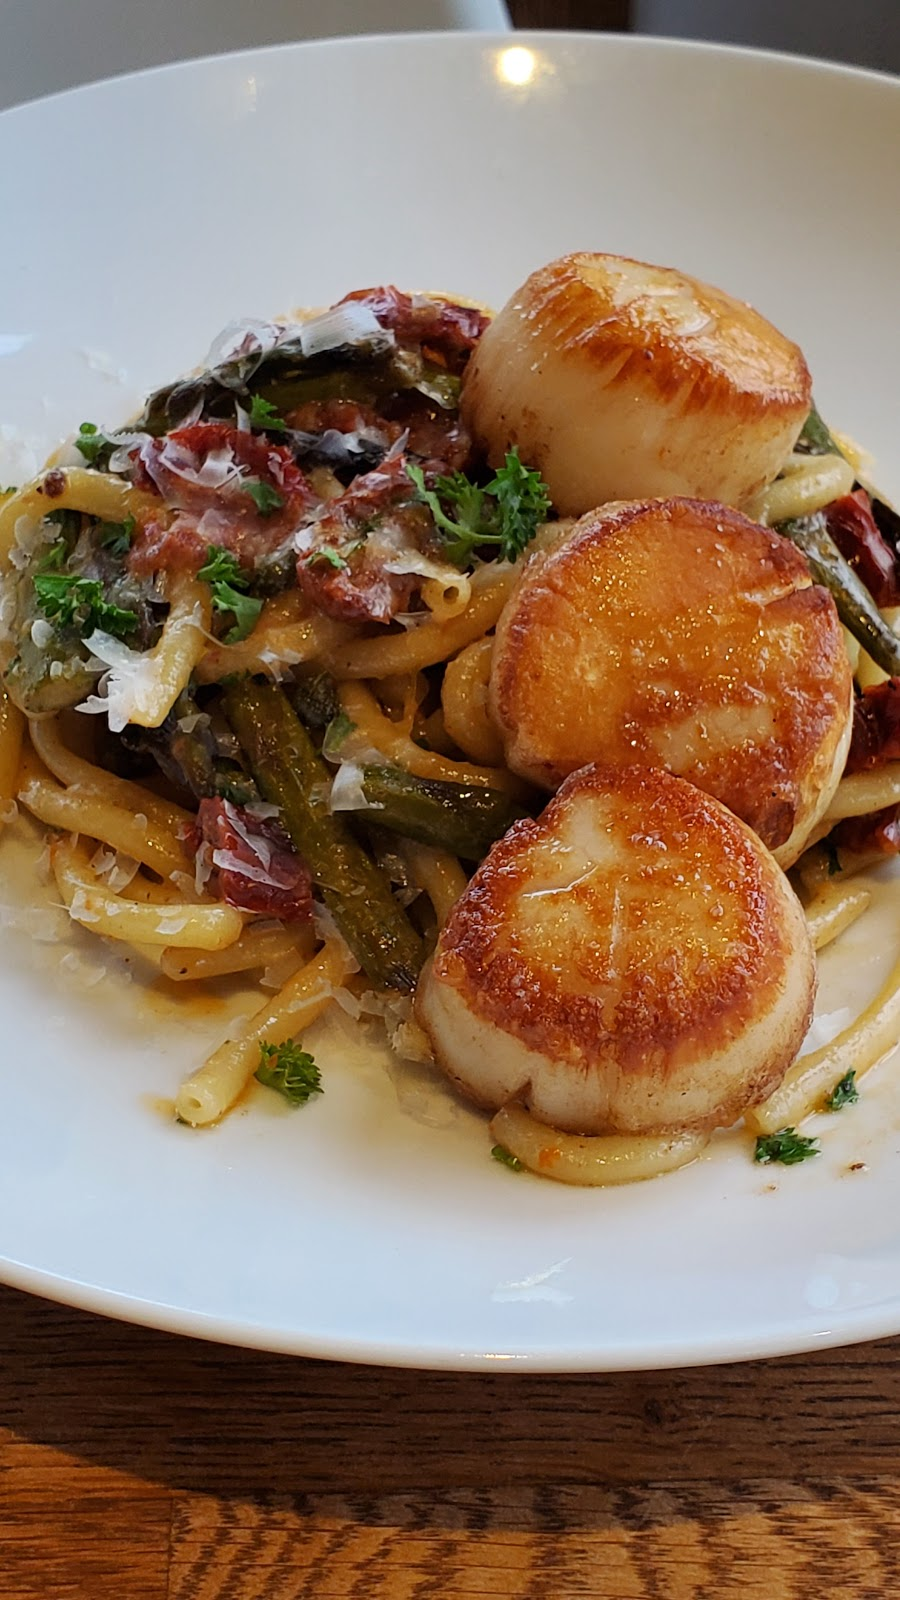 Fiore Famiglia | restaurant | 2603 16th Ave west, Vancouver, BC V6K 3C2, Canada | 6045582603 OR +1 604-558-2603